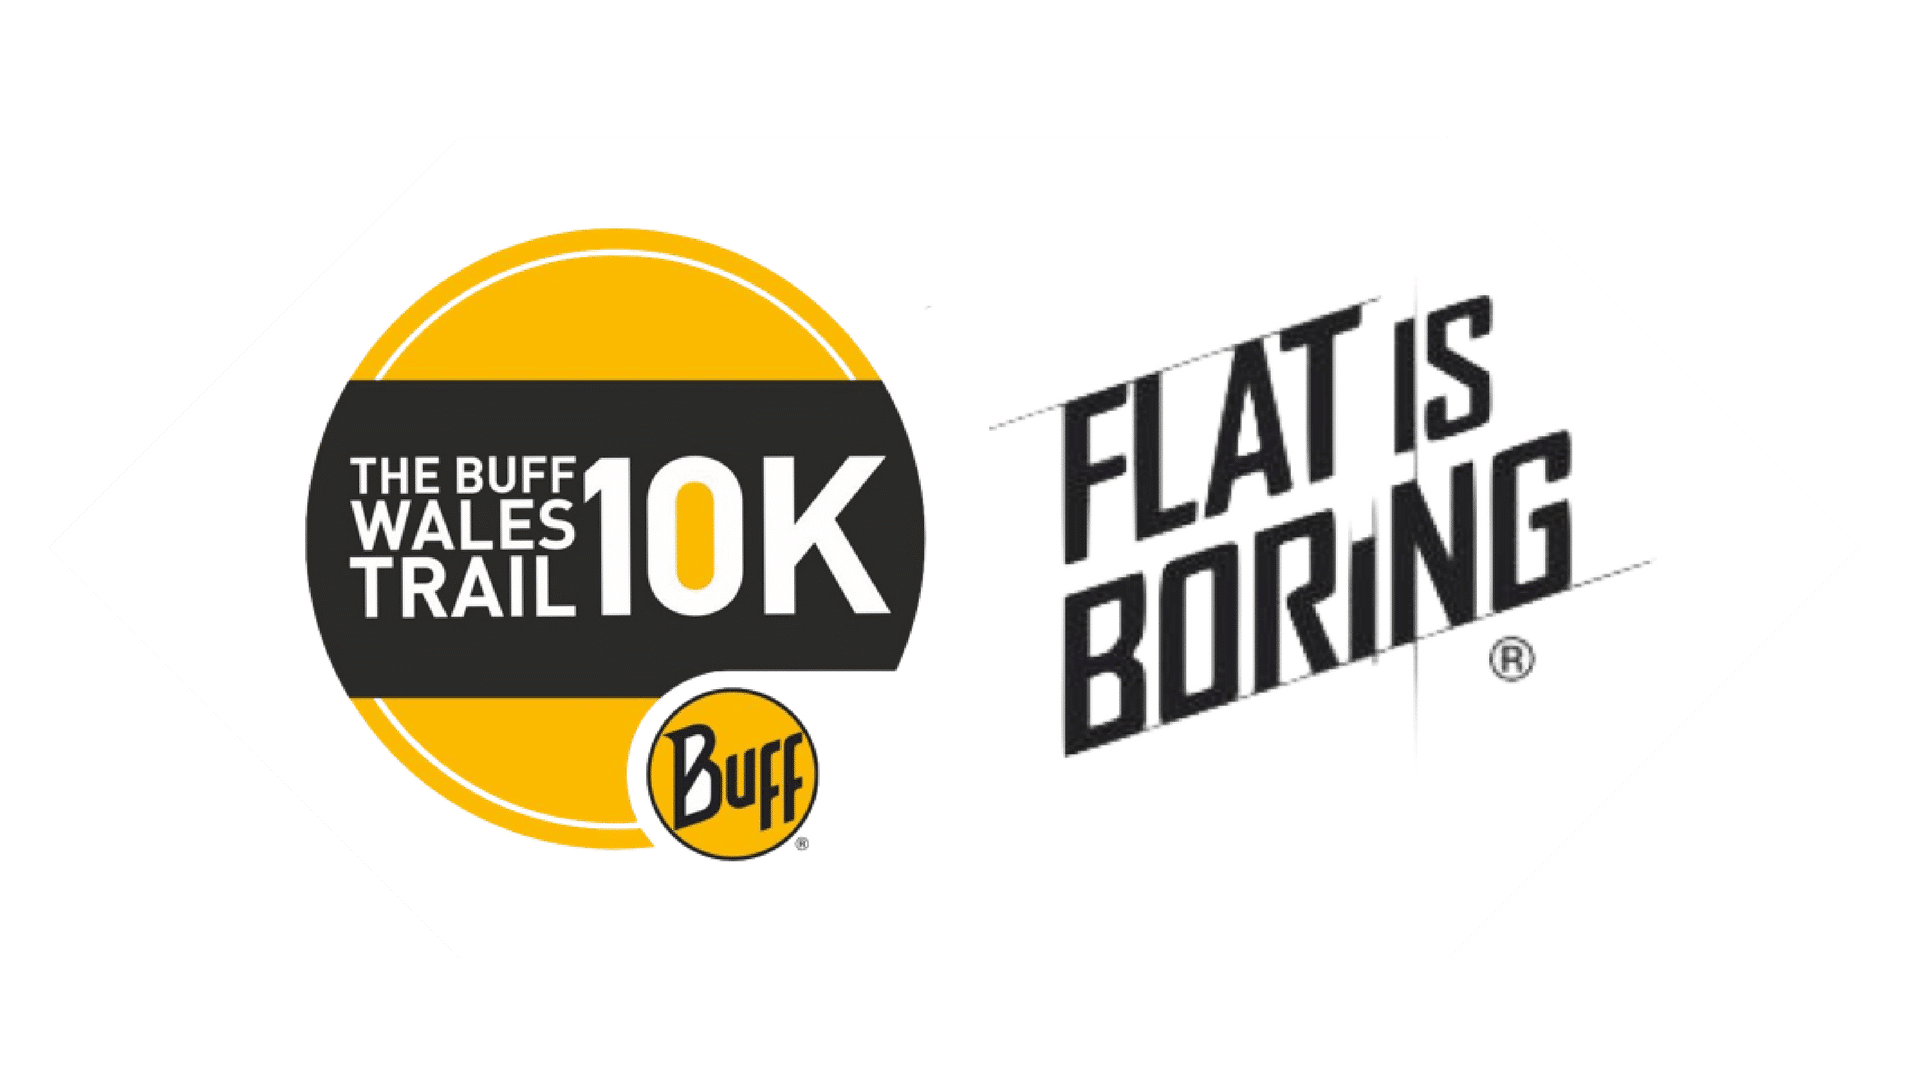 This is the buff 10k flat is boring logo variation